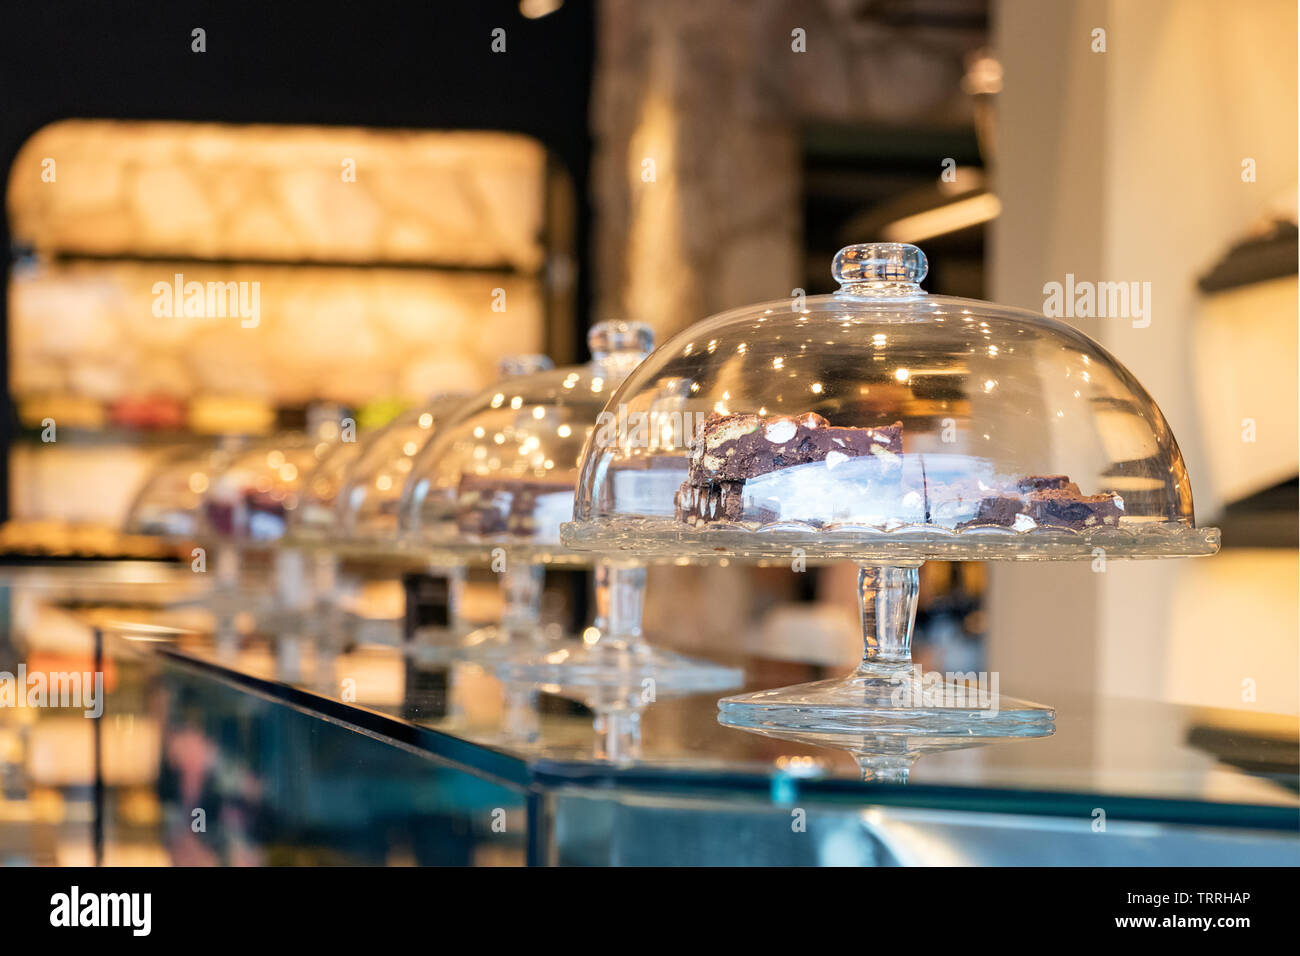 Pastry glass bells in a row placed on the counter inside a bakery store. - Stock Image